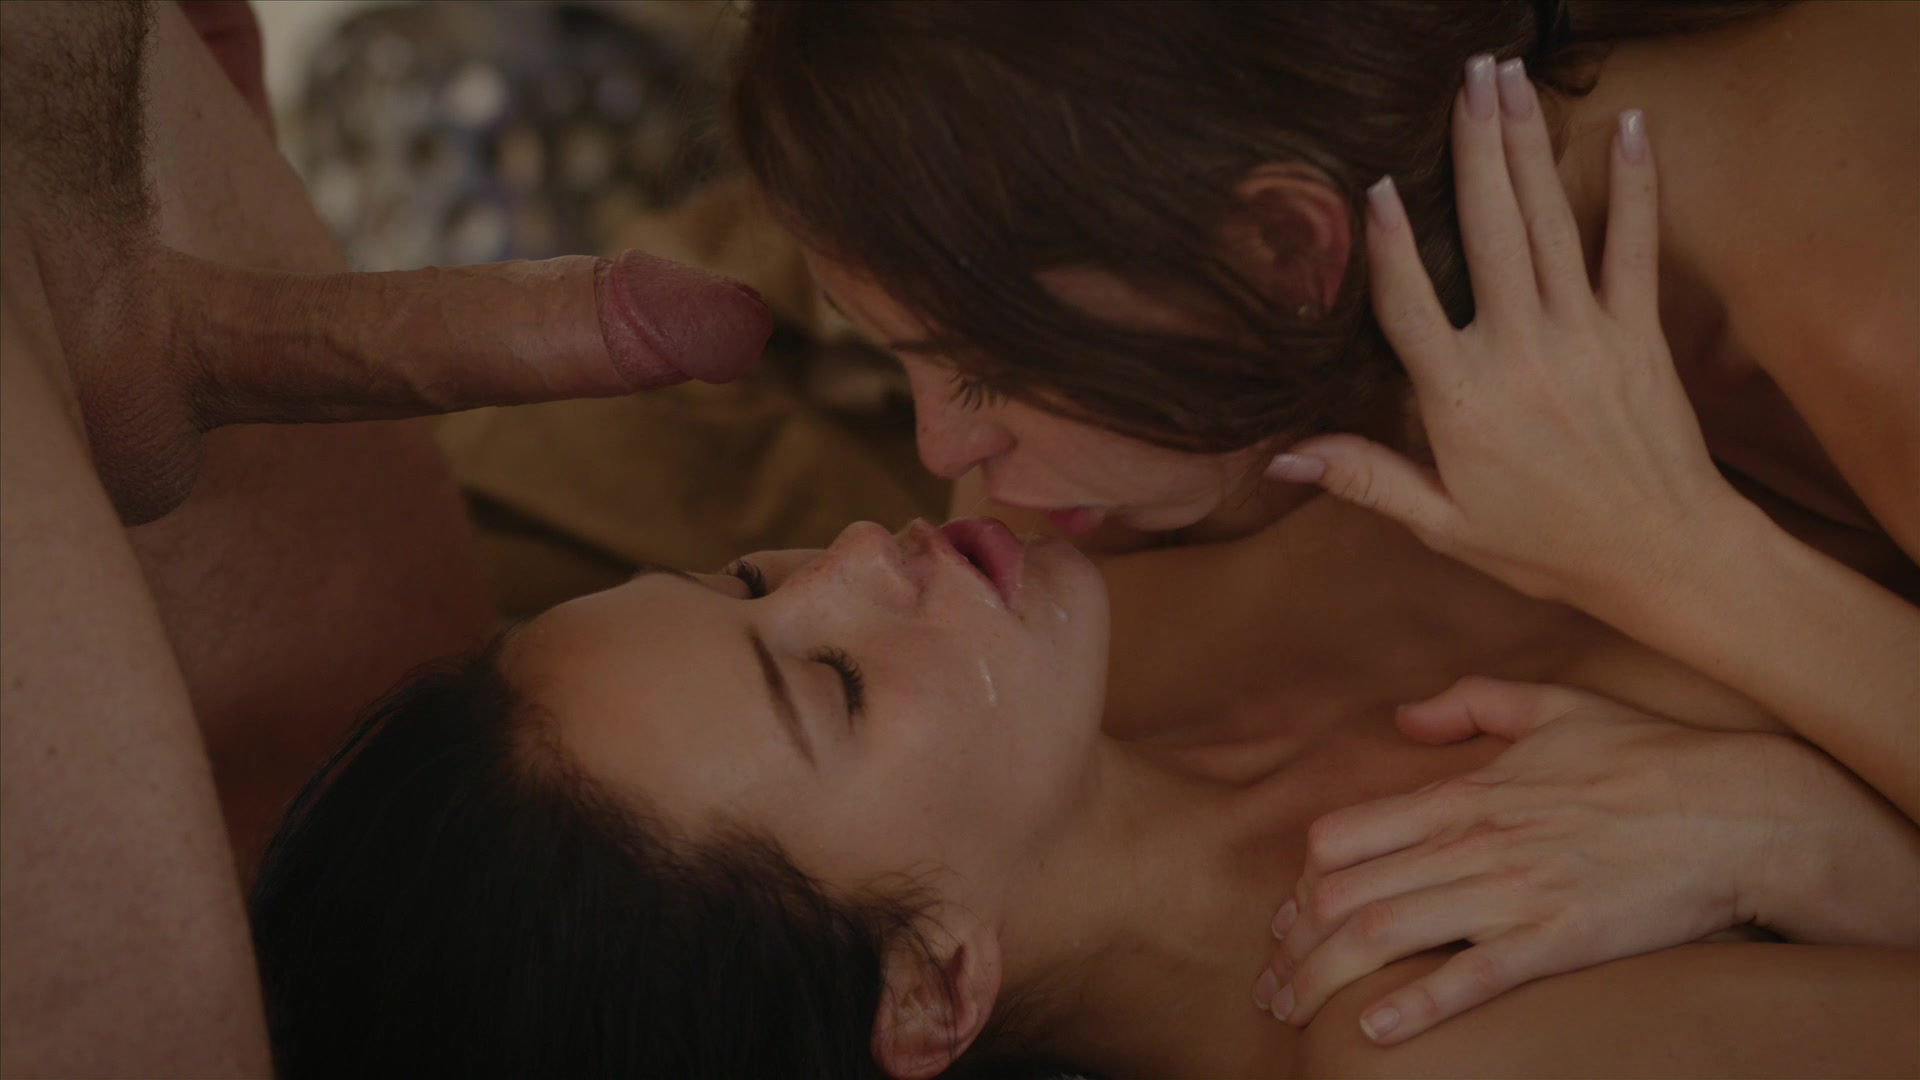 Scene with Riley Reid and Megan Rain - image 20 out of 20